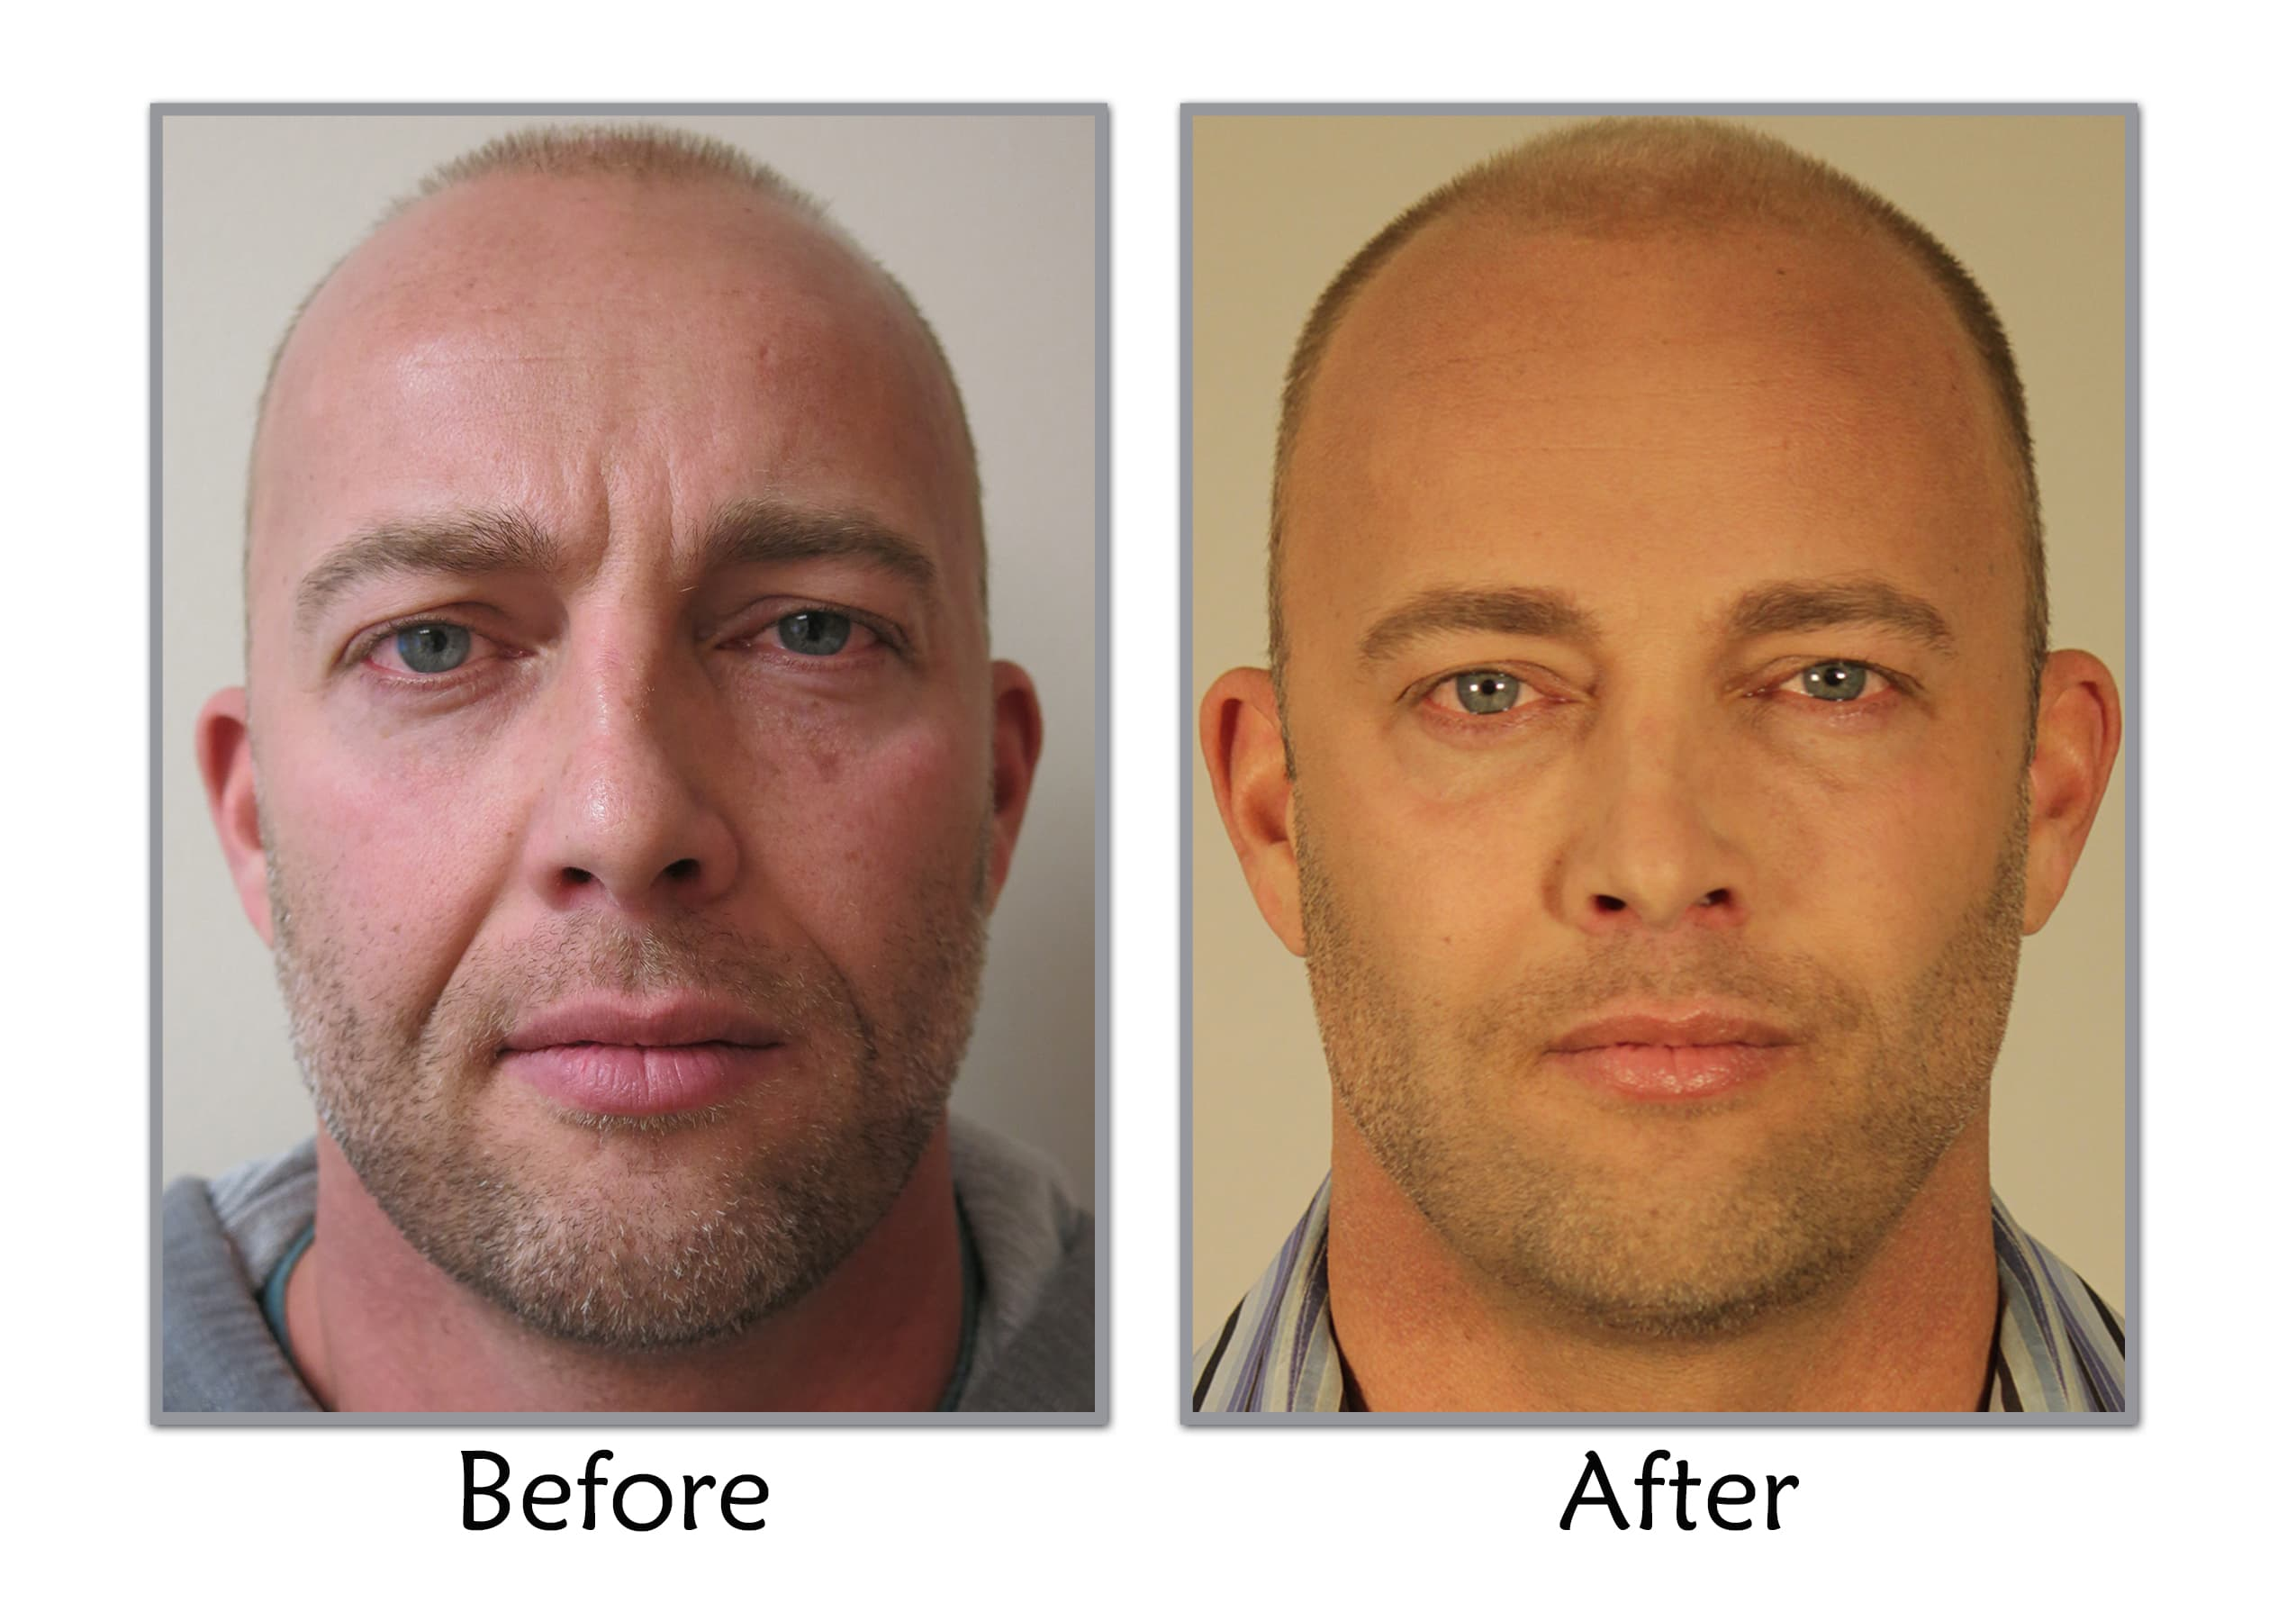 Male Enhancement Plastic Surgery Before And After Video 1